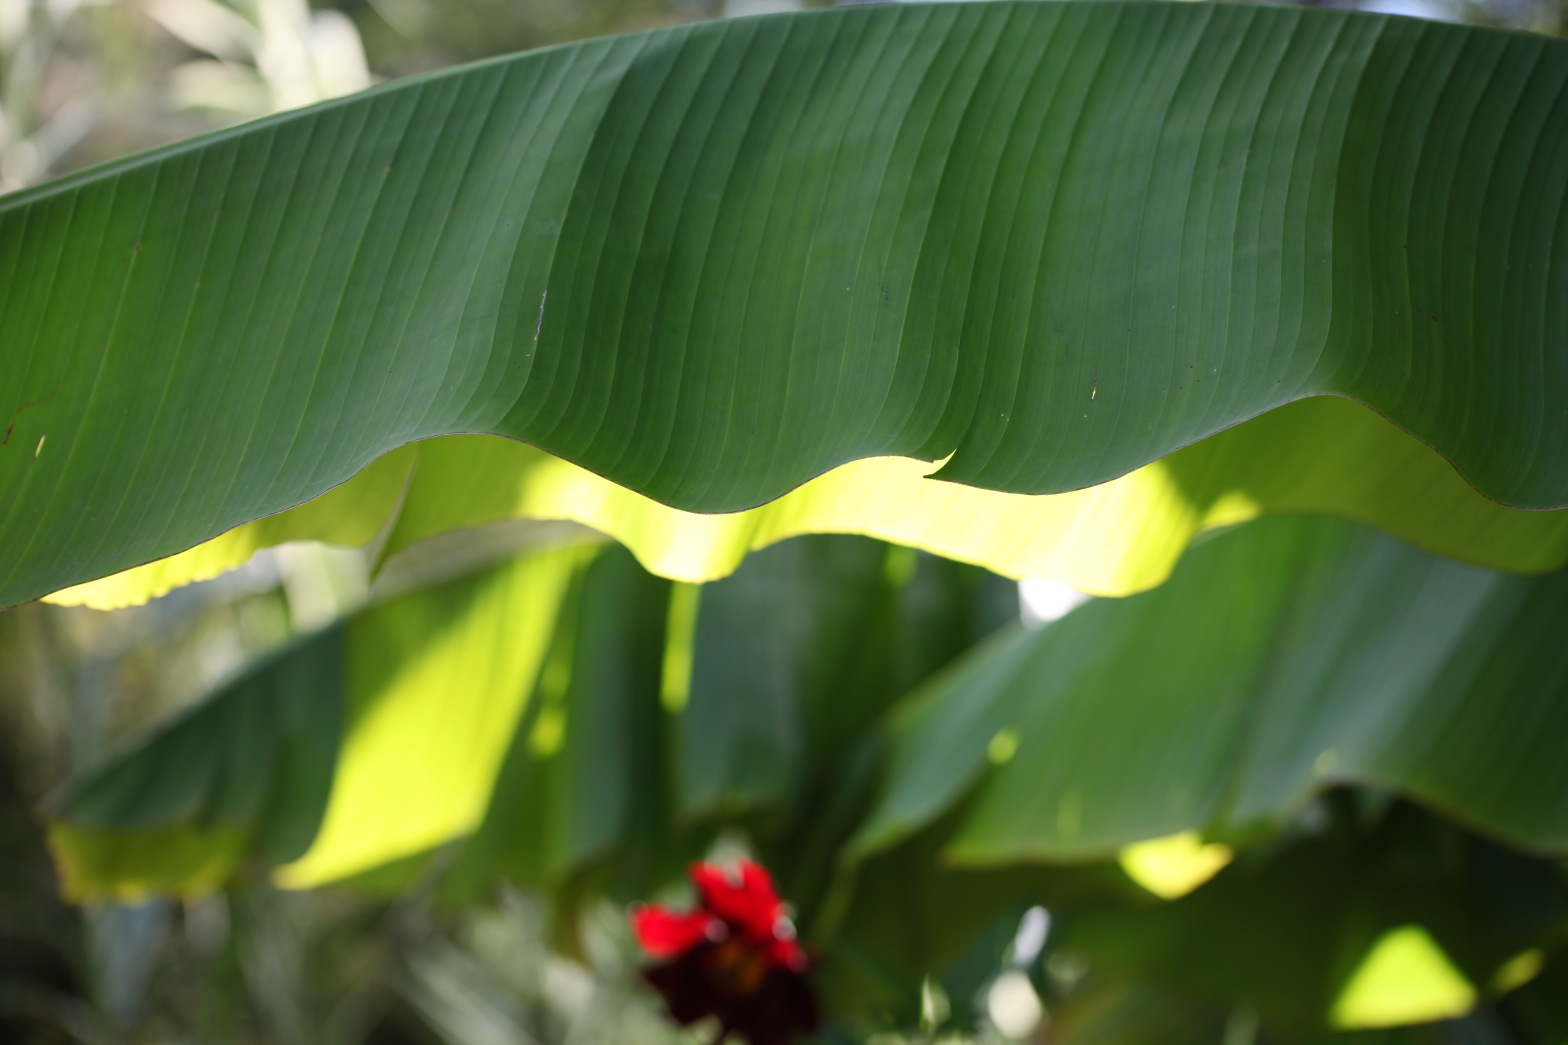 Light through banana leaves 1